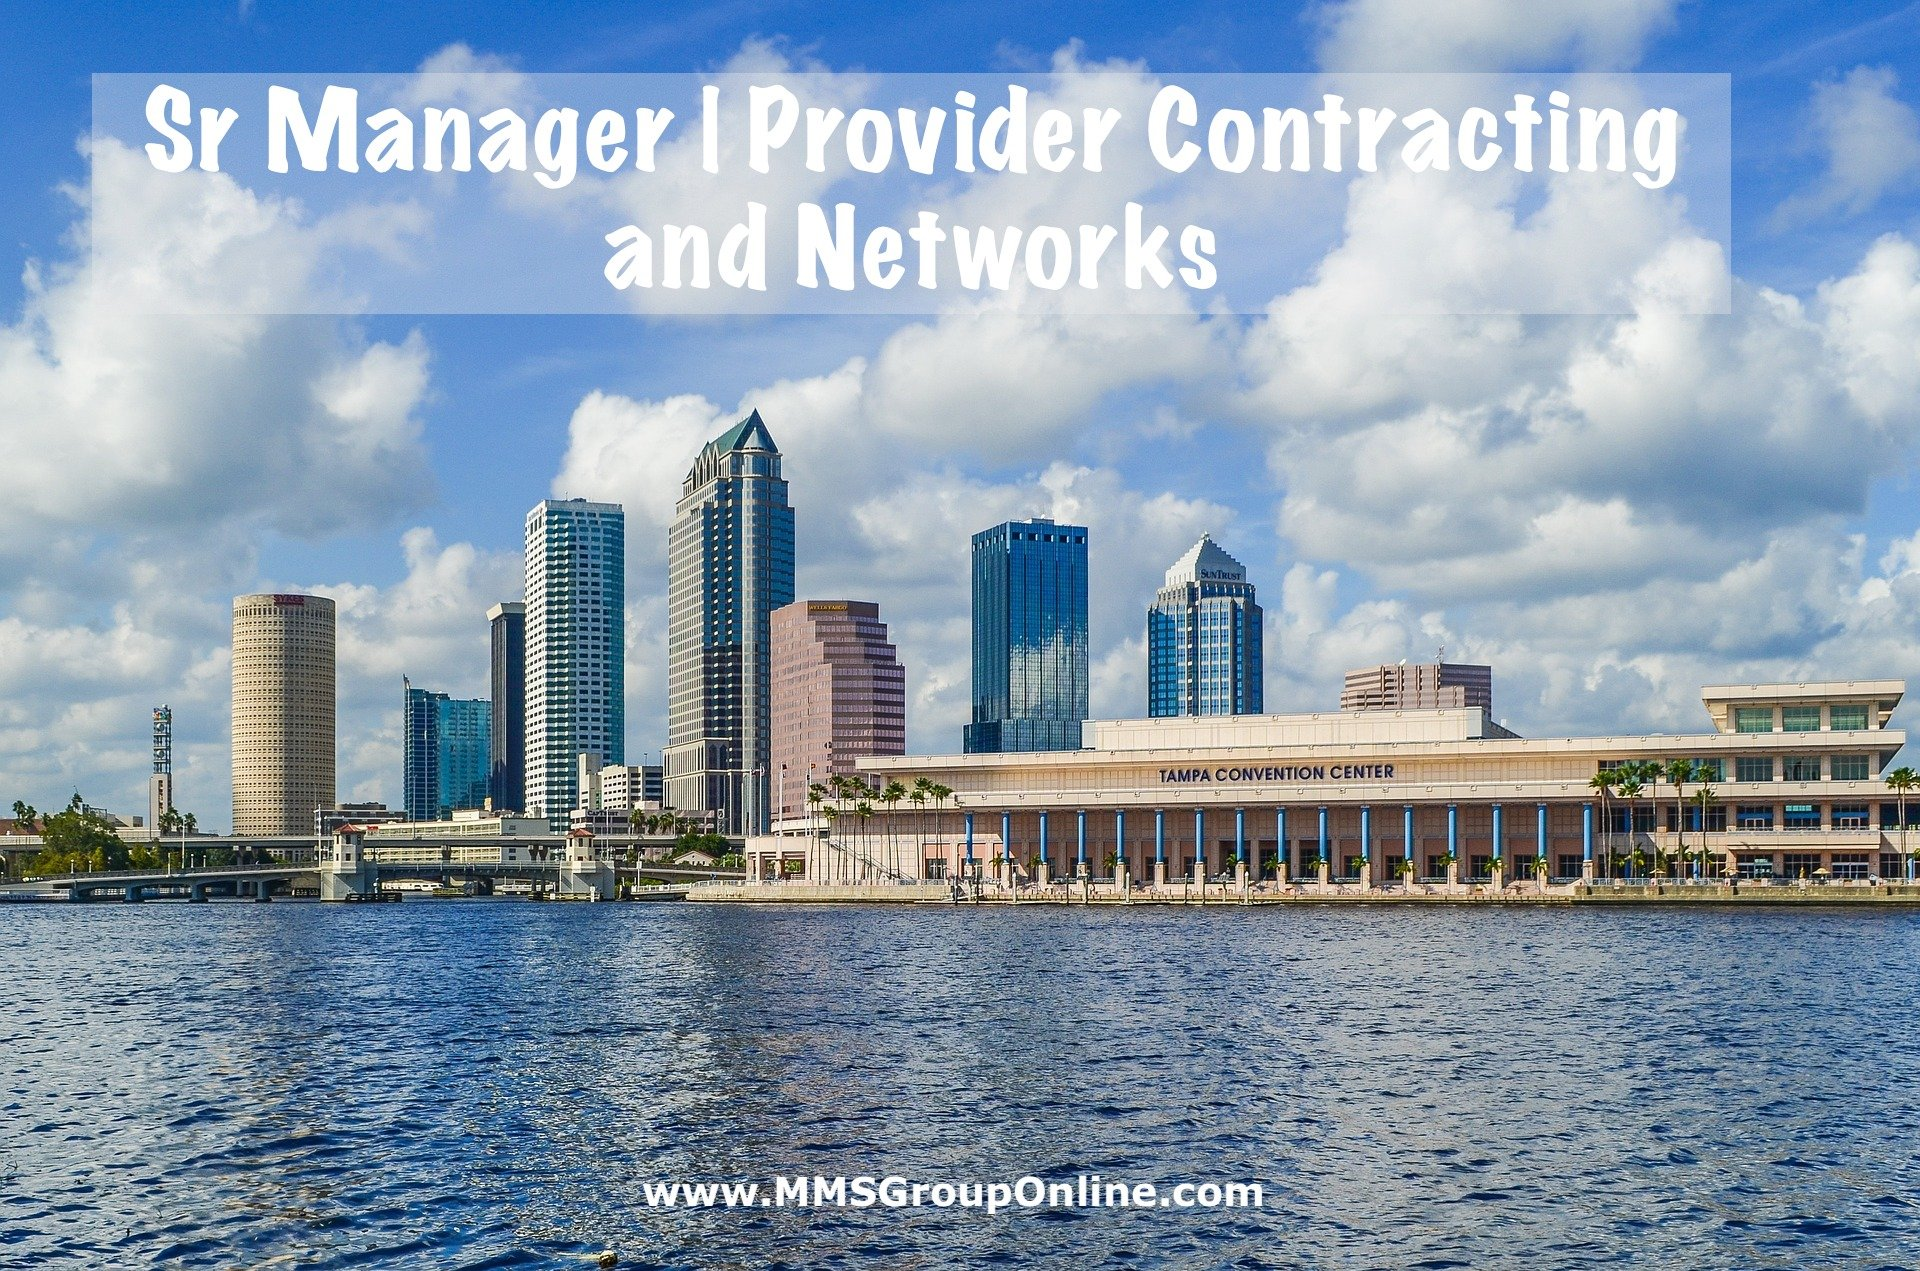 Sr Manager Provider Contracting and Networks in Florida